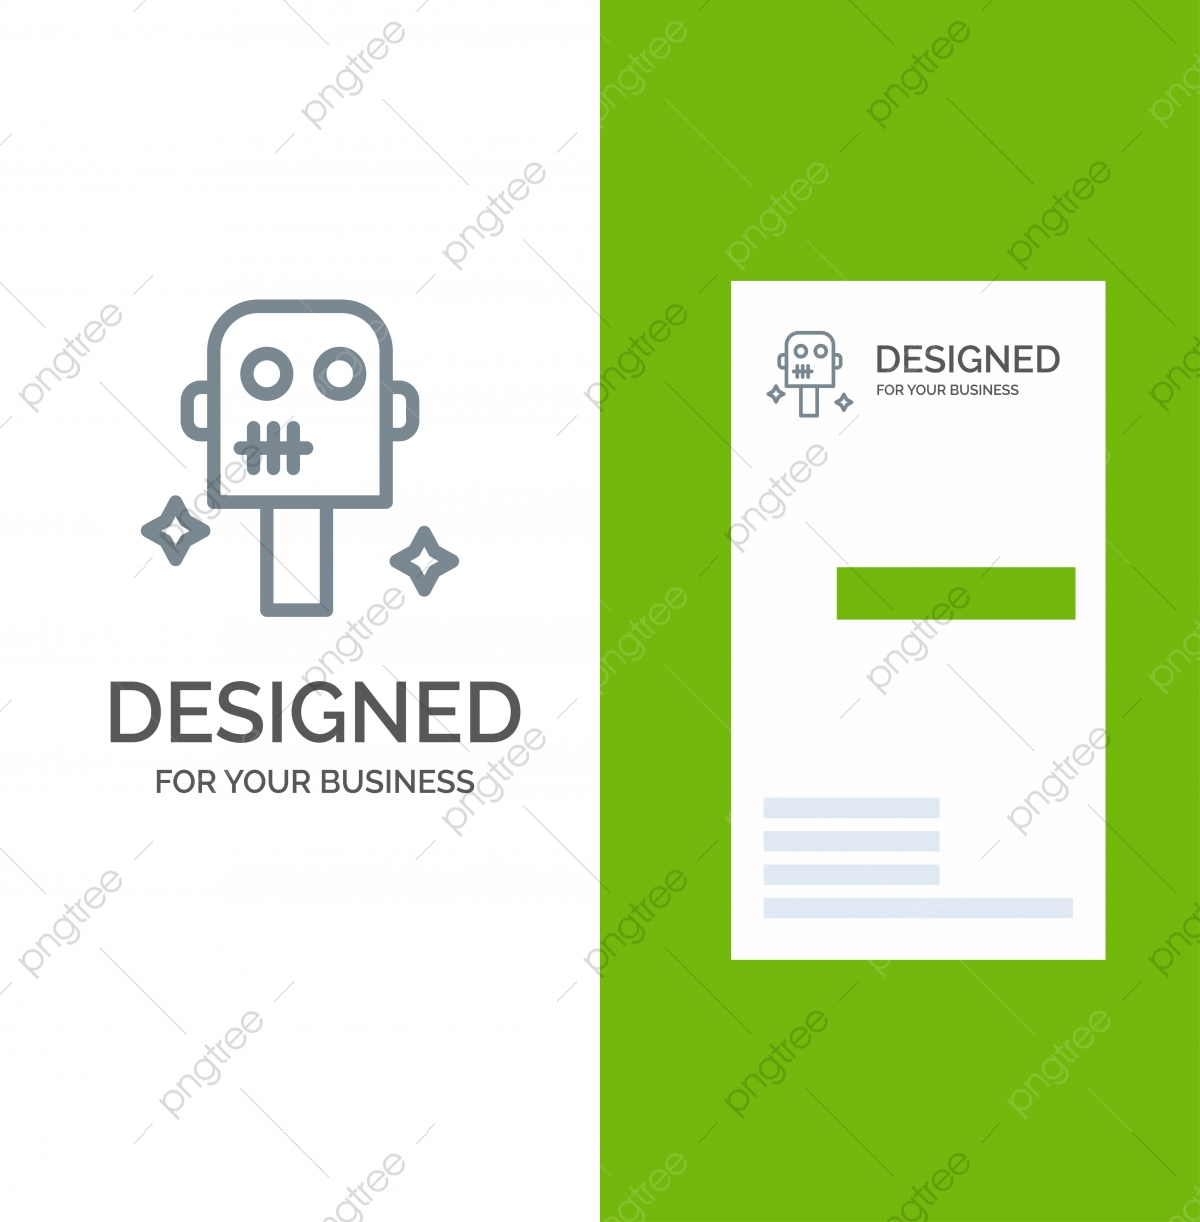 pngtree space suit robot grey logo design and business card template png image 4657290